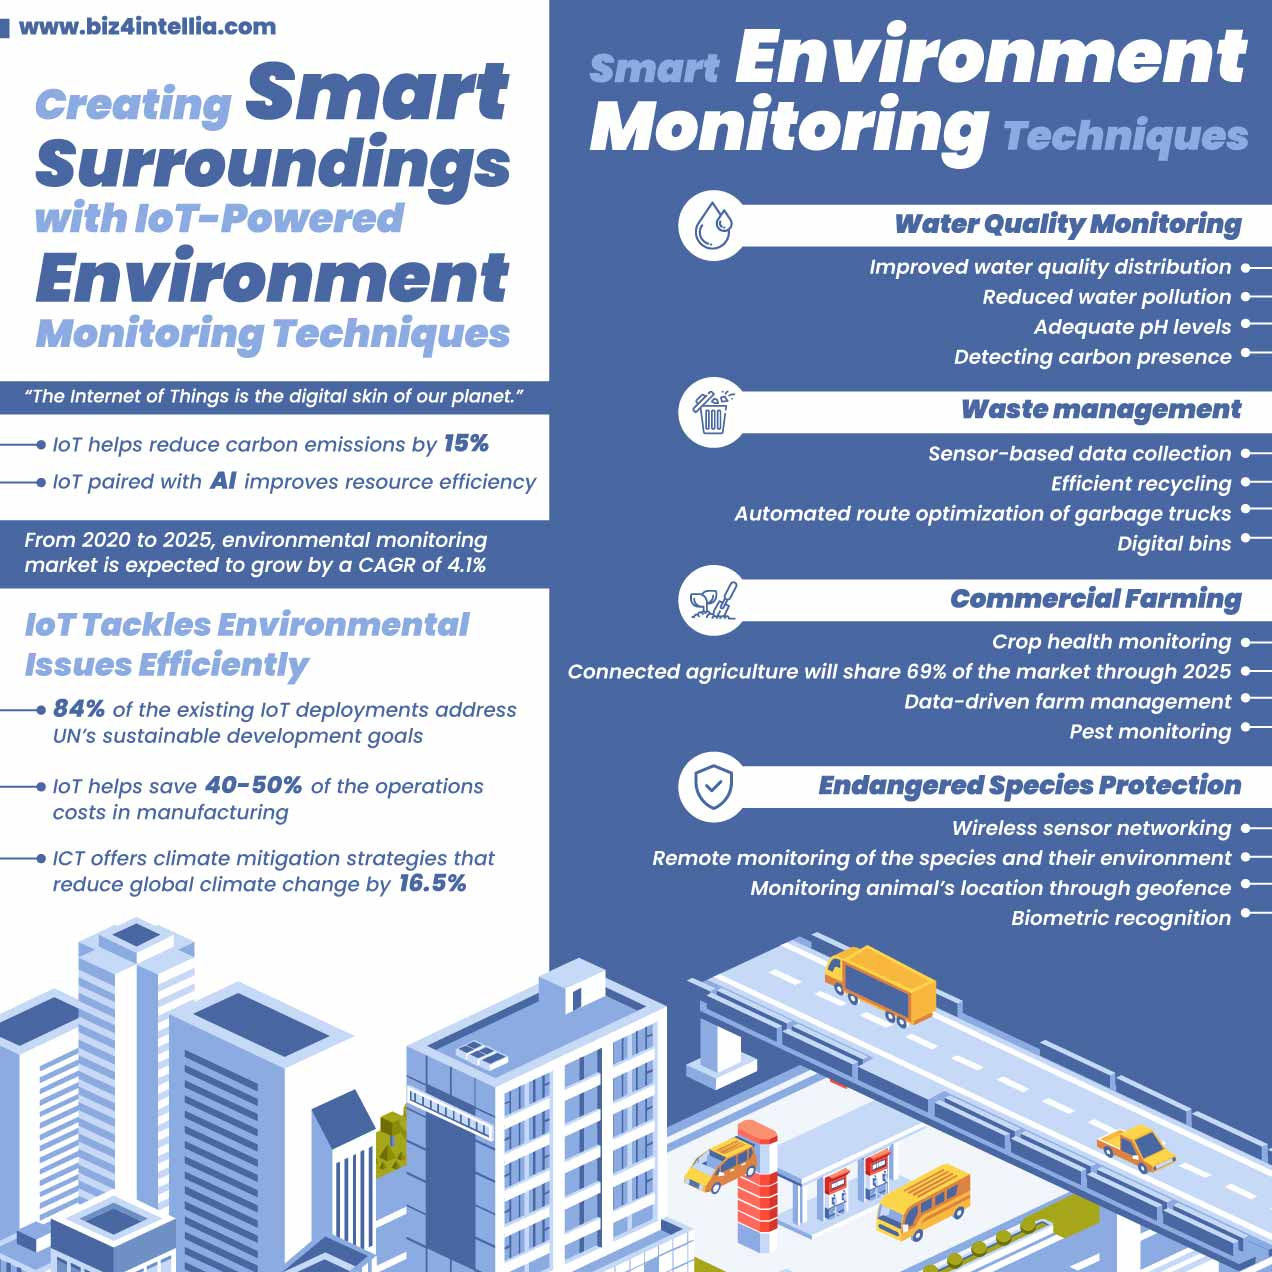 creating-smart-surroundings-with-iot-powered-environment-monitoring-techniques